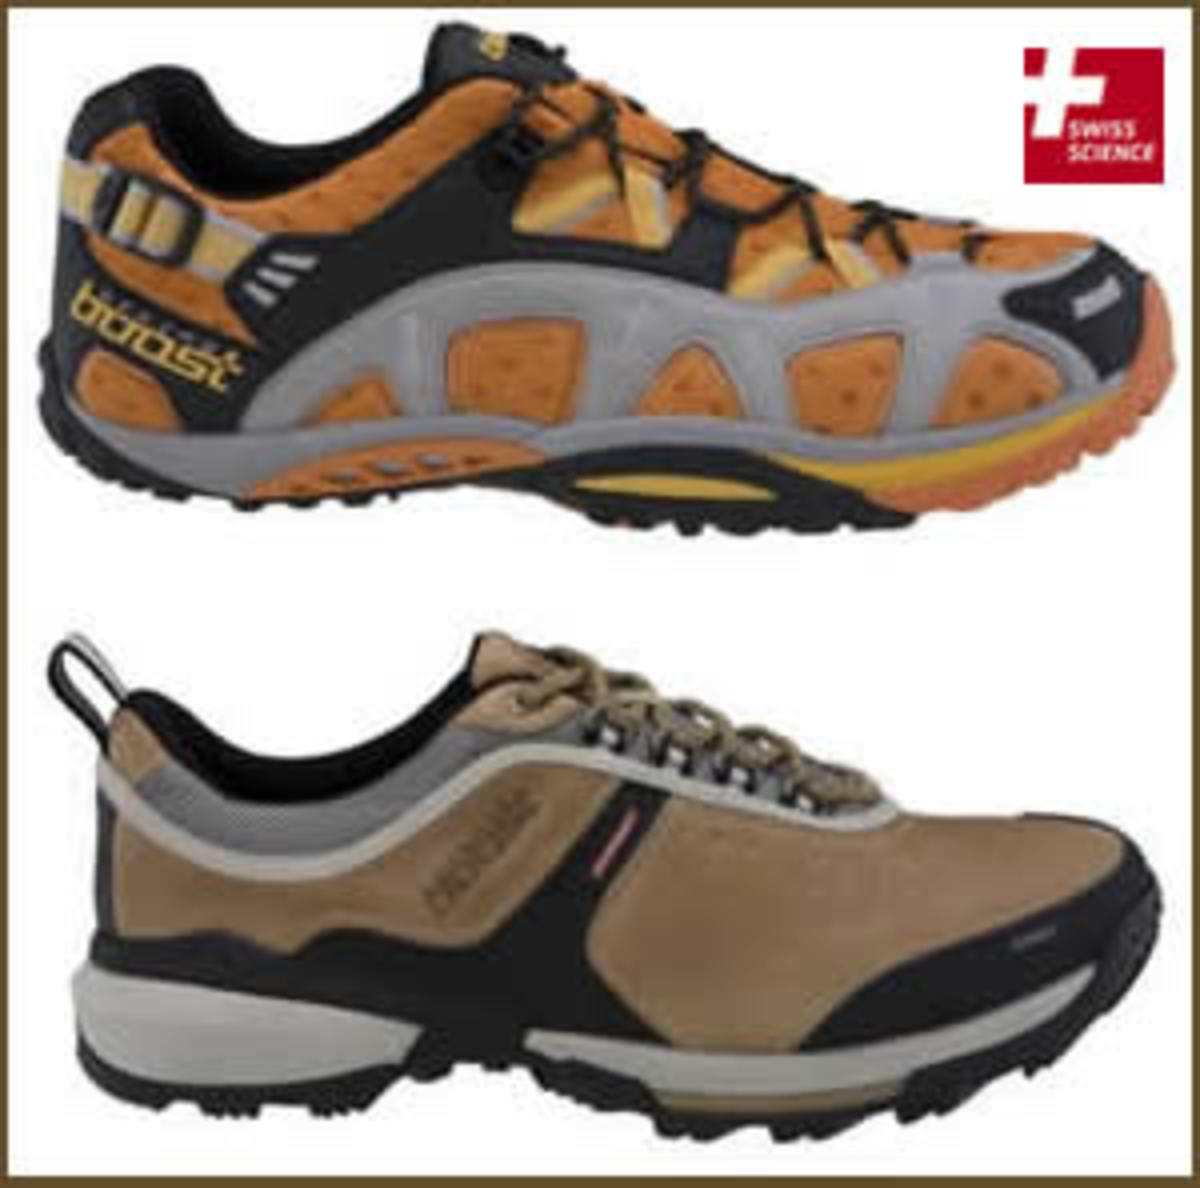 Two of the performance enhancing shoes from Springboost footwear